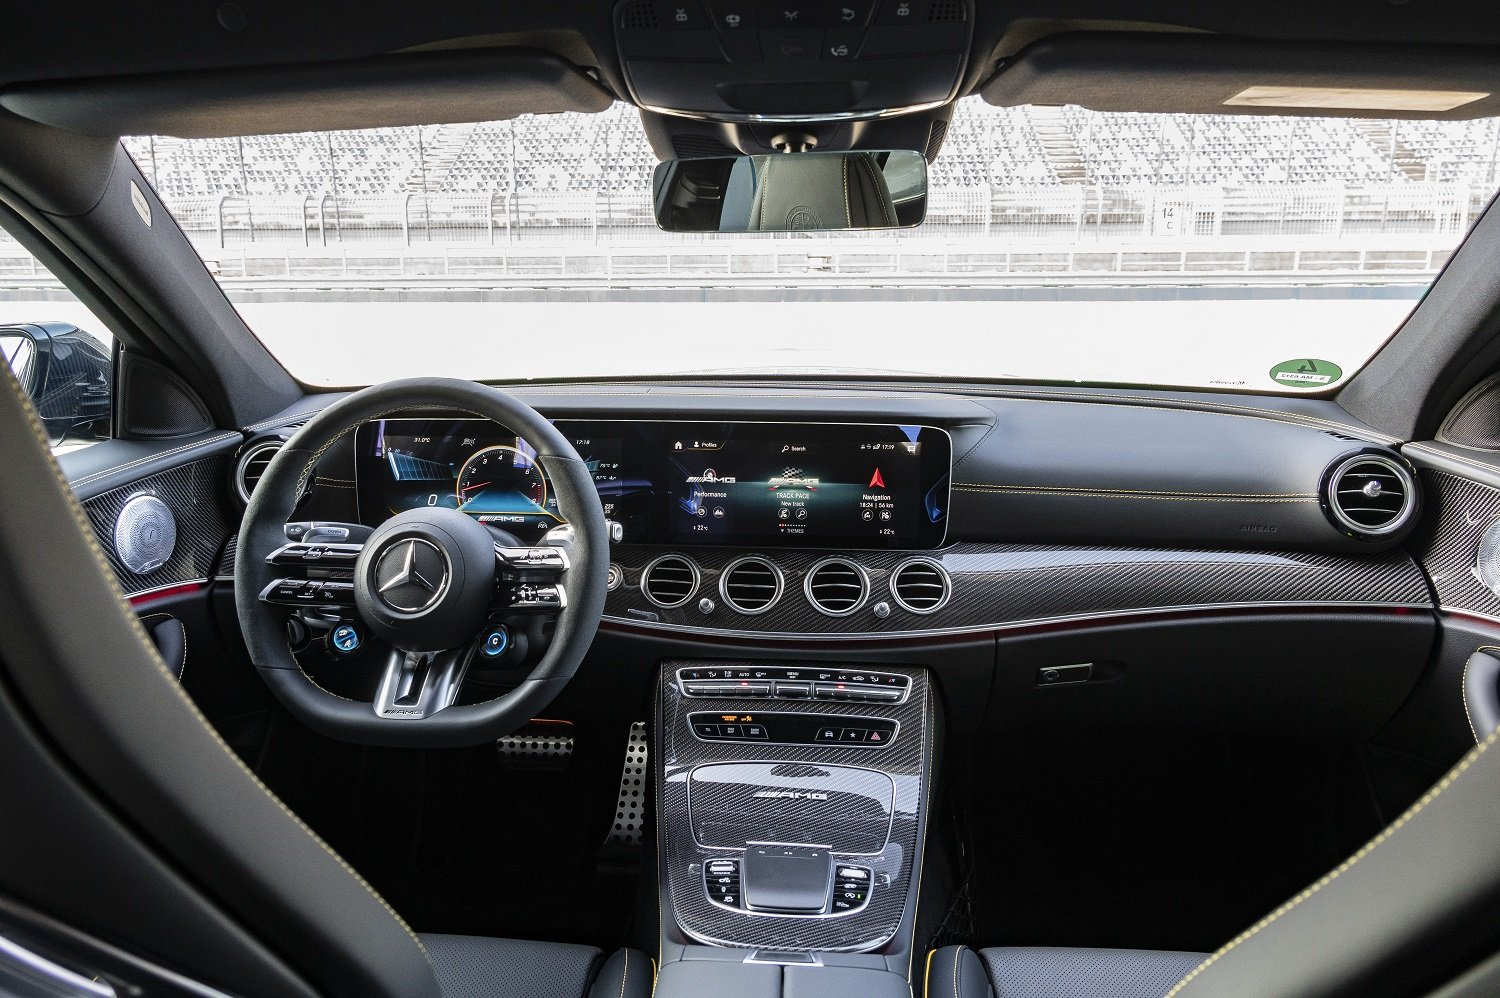 Mercedes-Benz E-Class gains new feature set and design for 2021